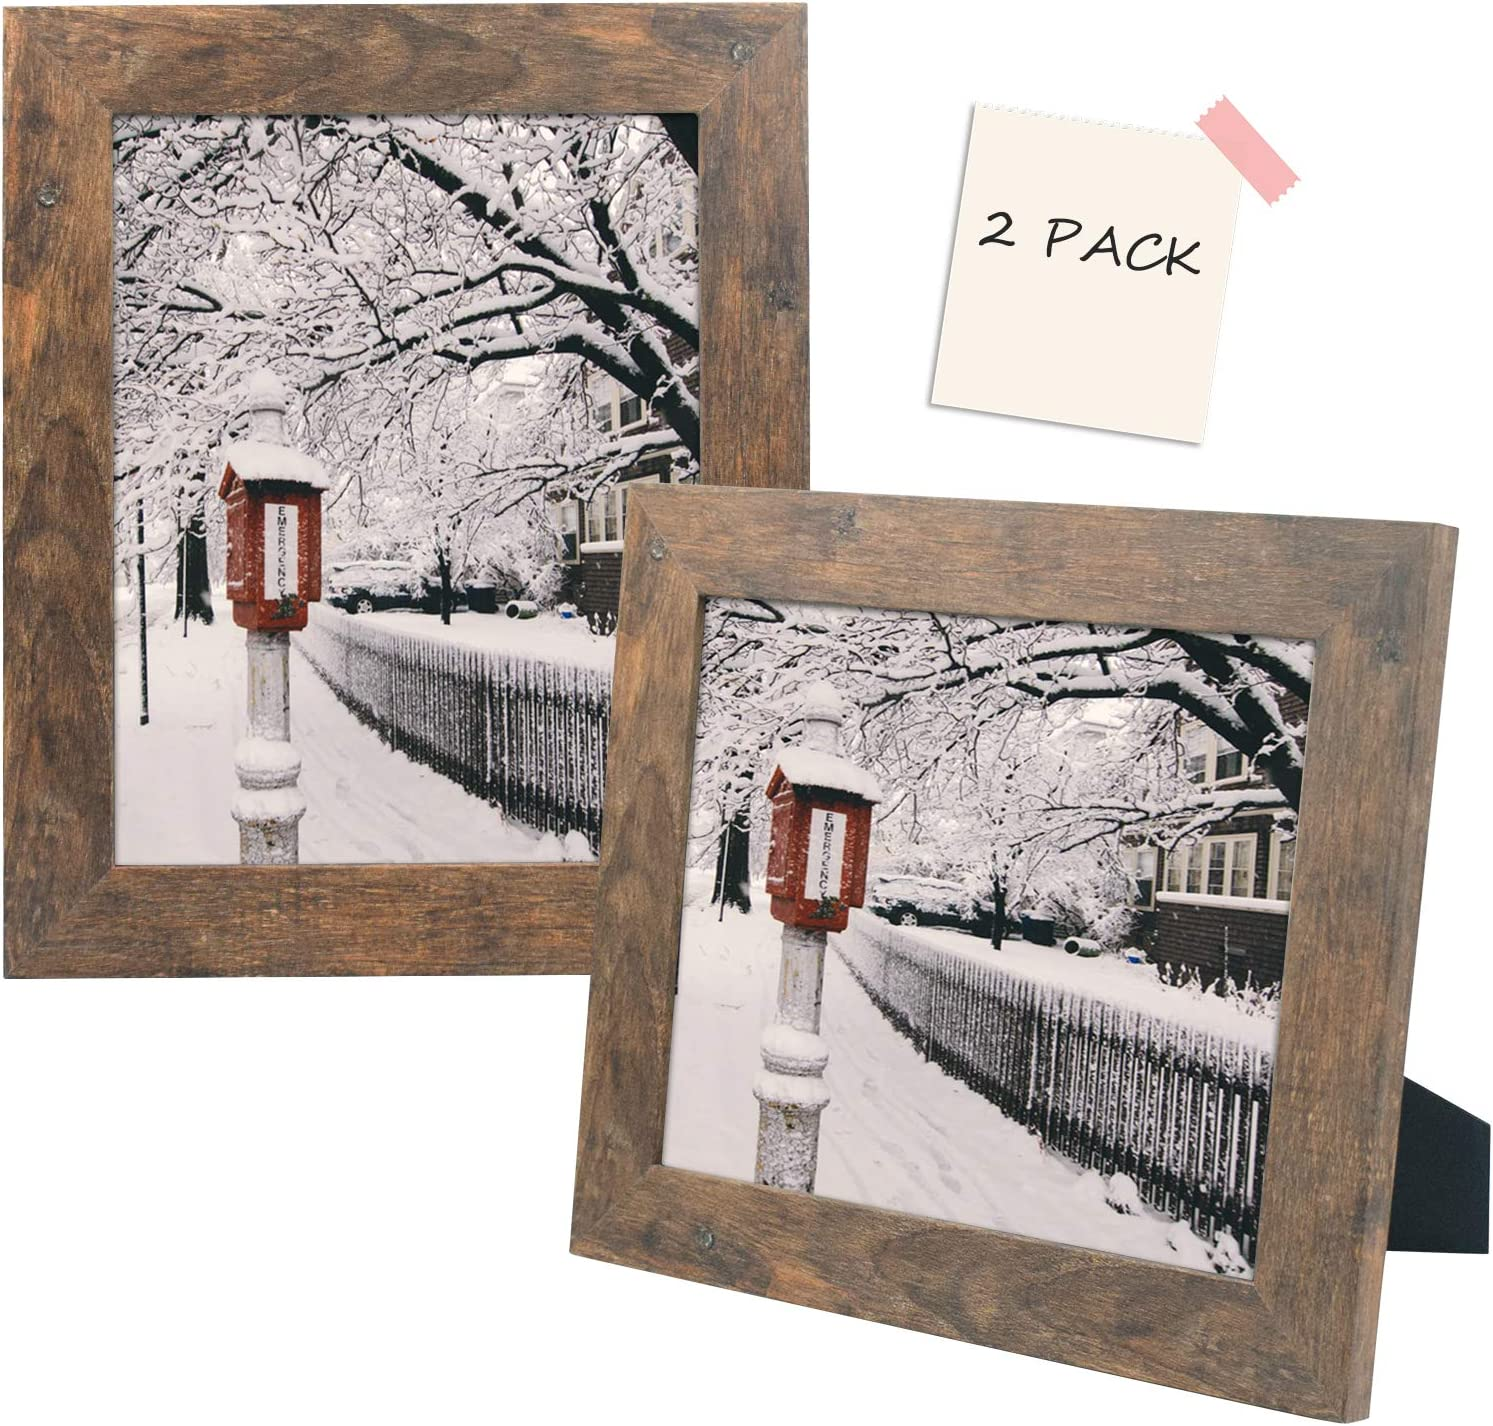 Golden State Art, Set of 2 Picture Frame - Wide Molding - Wood Grain Style - Easel for Tabletop Display, Back Hangers for Wall Display - Great for Baby Pictures, Weddings, Portraits (8x10, Brown)